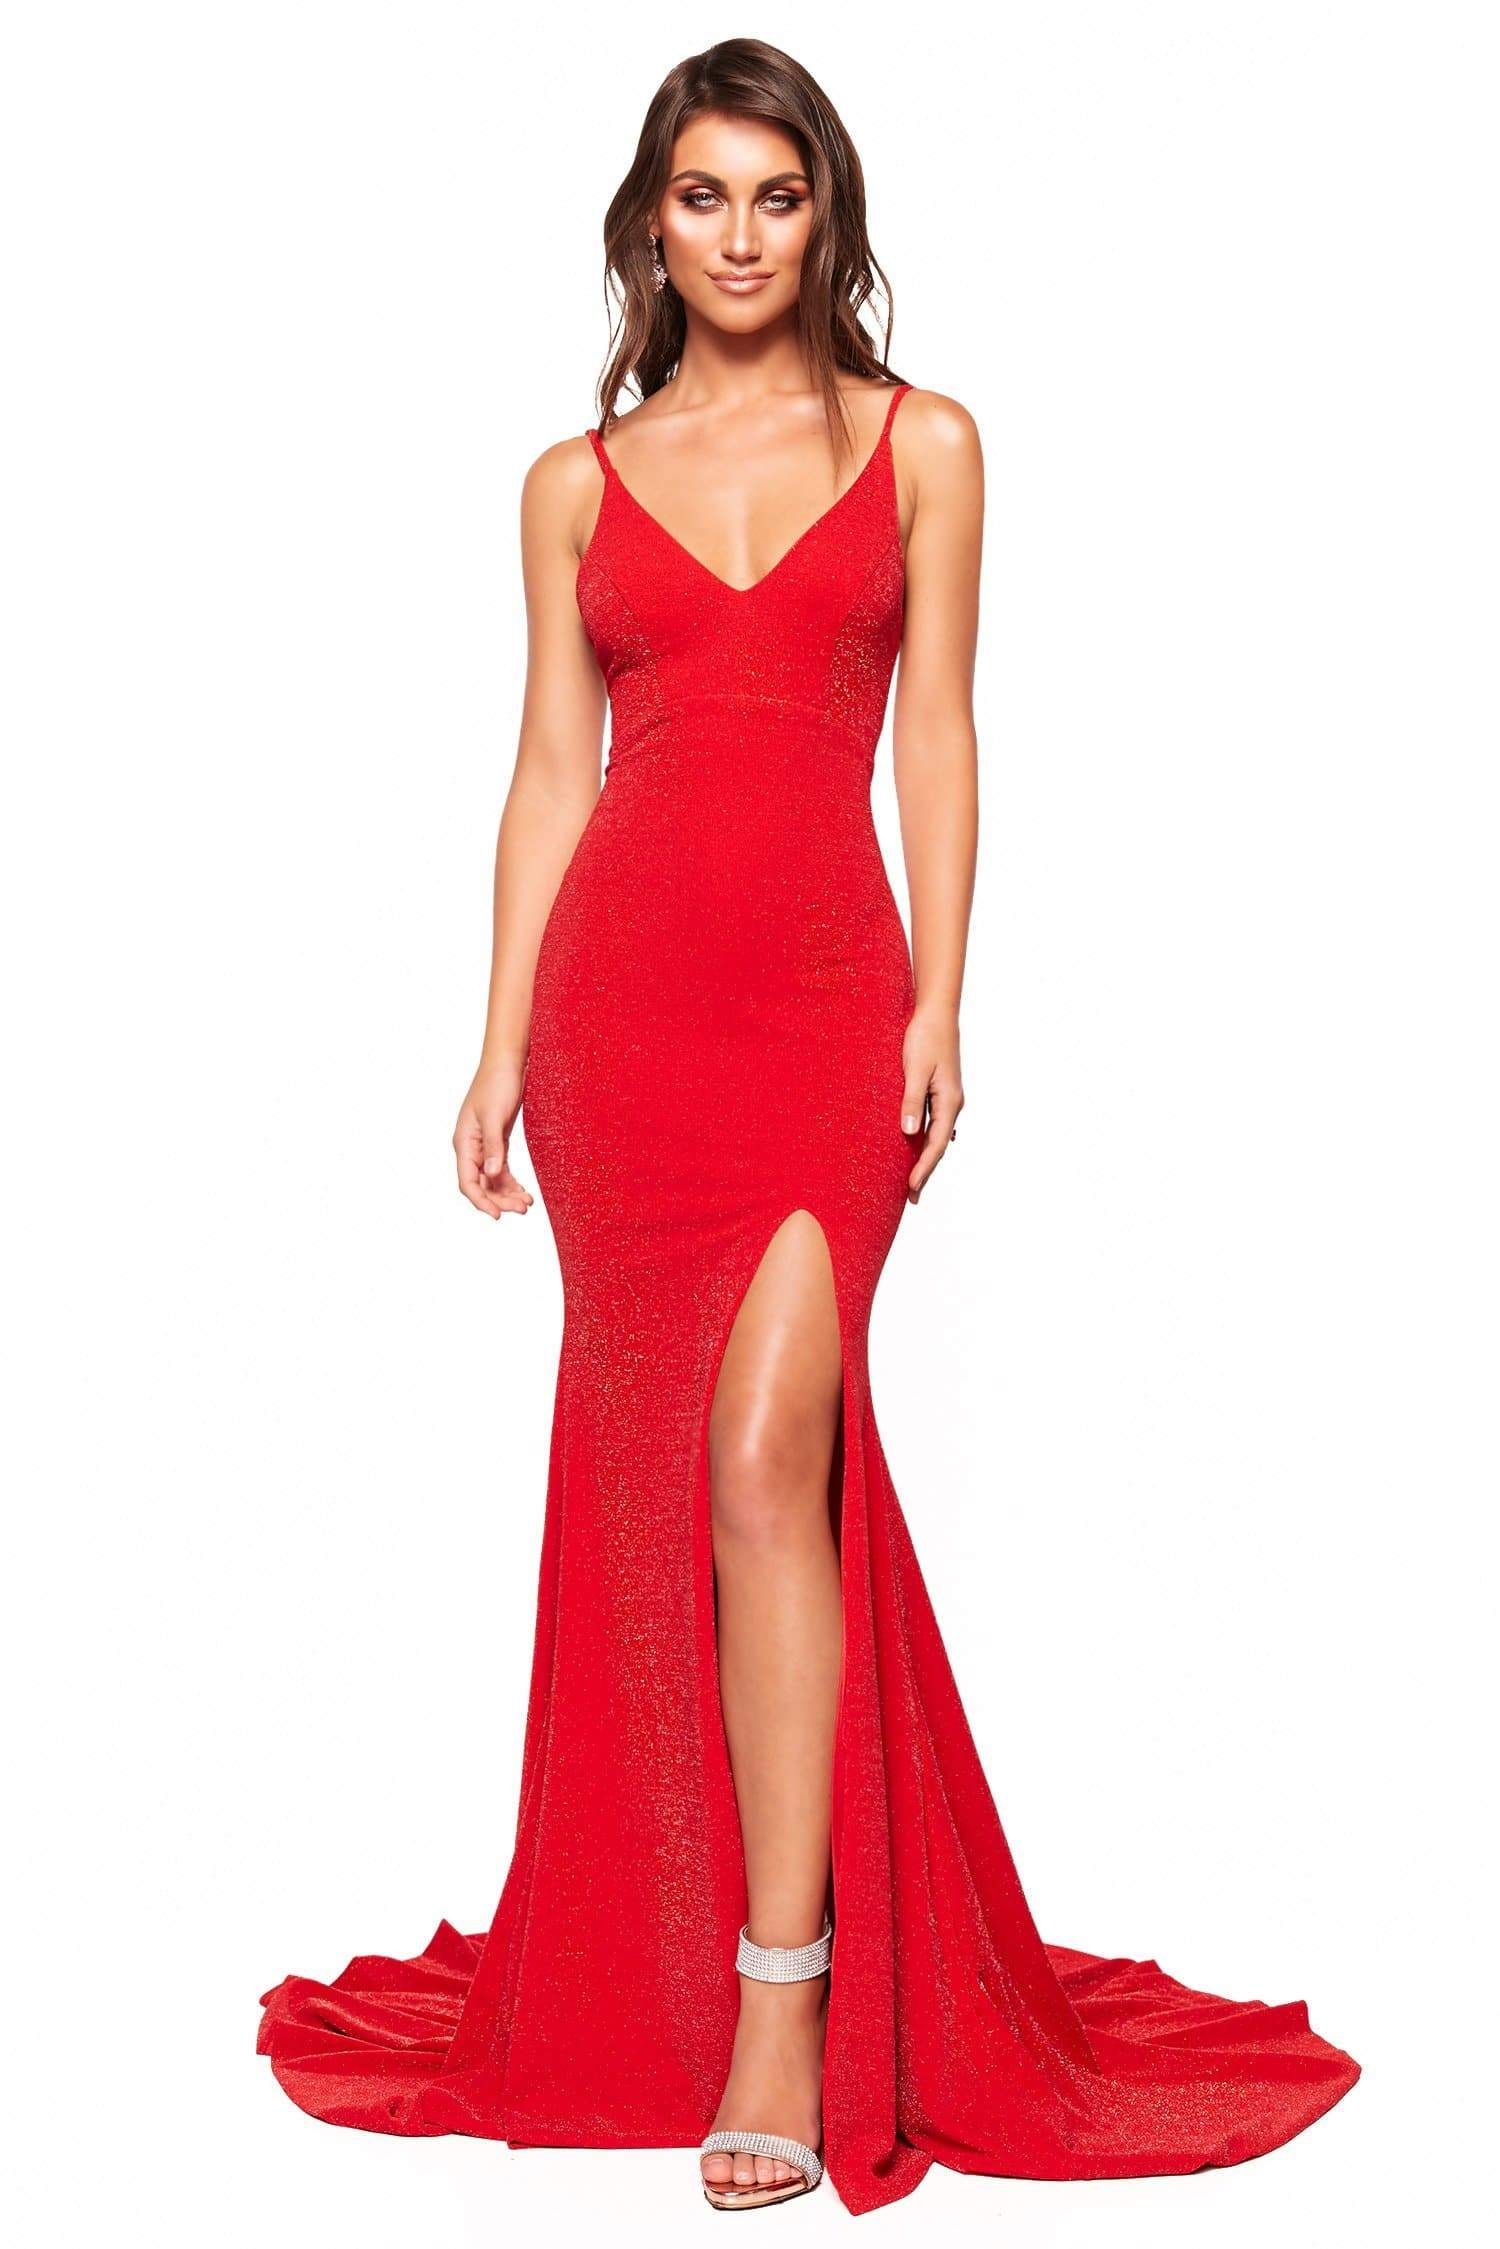 A&N Luxe Maia - Red Shimmering Gown with Low Back & Slit